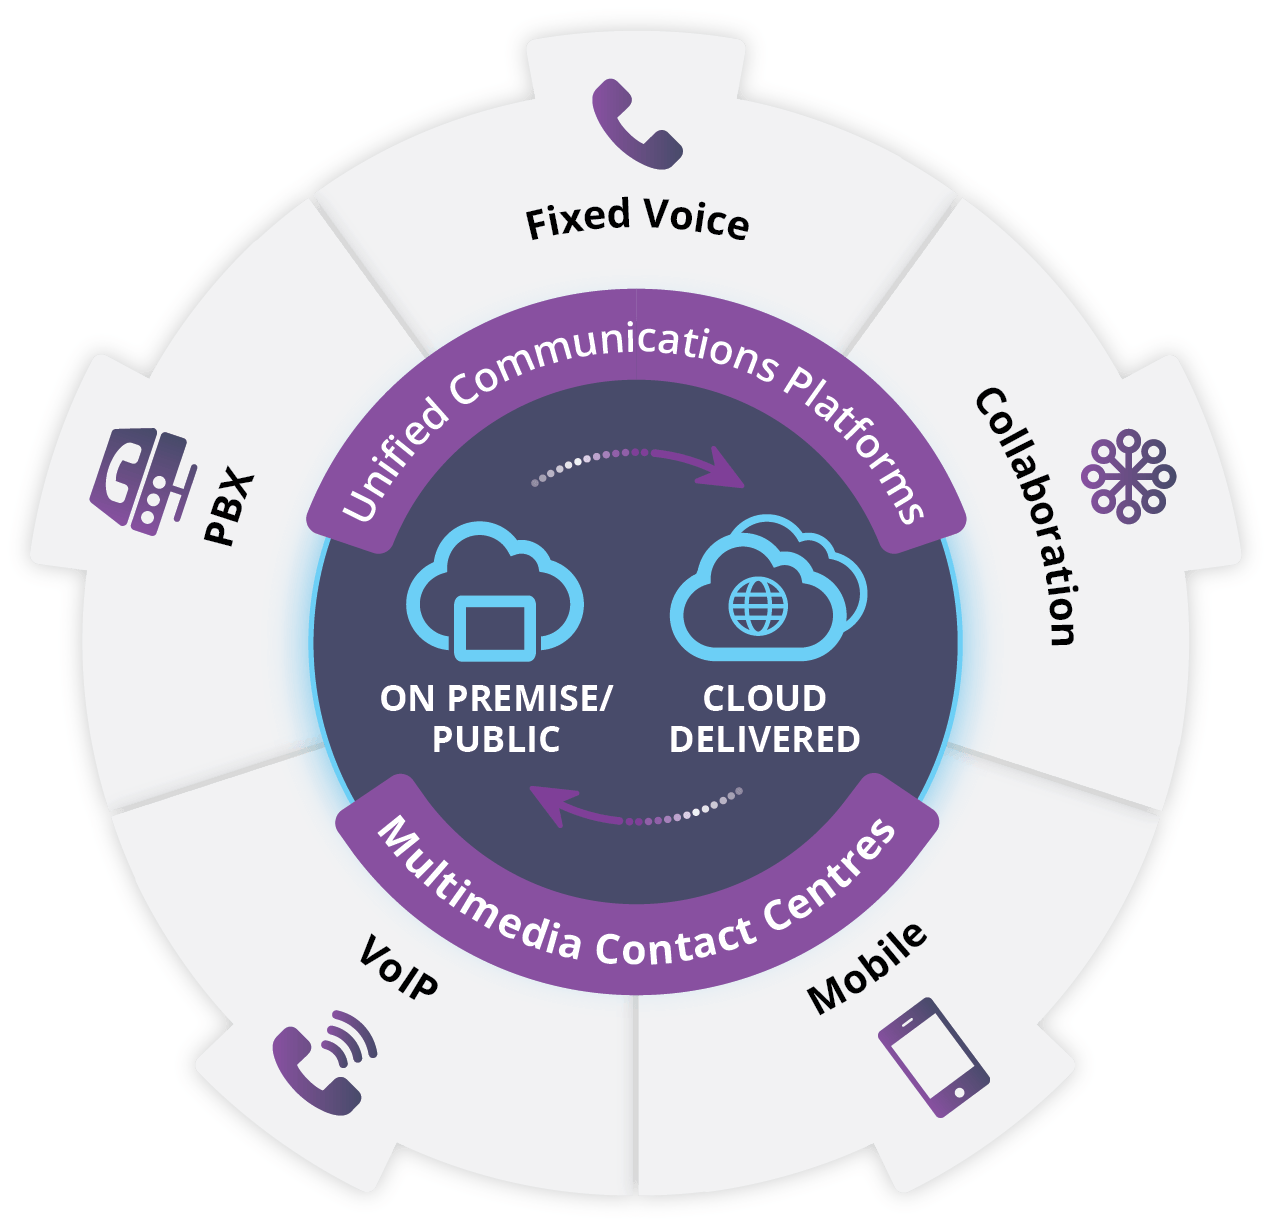 Voice unified communications and multimedia contact centres